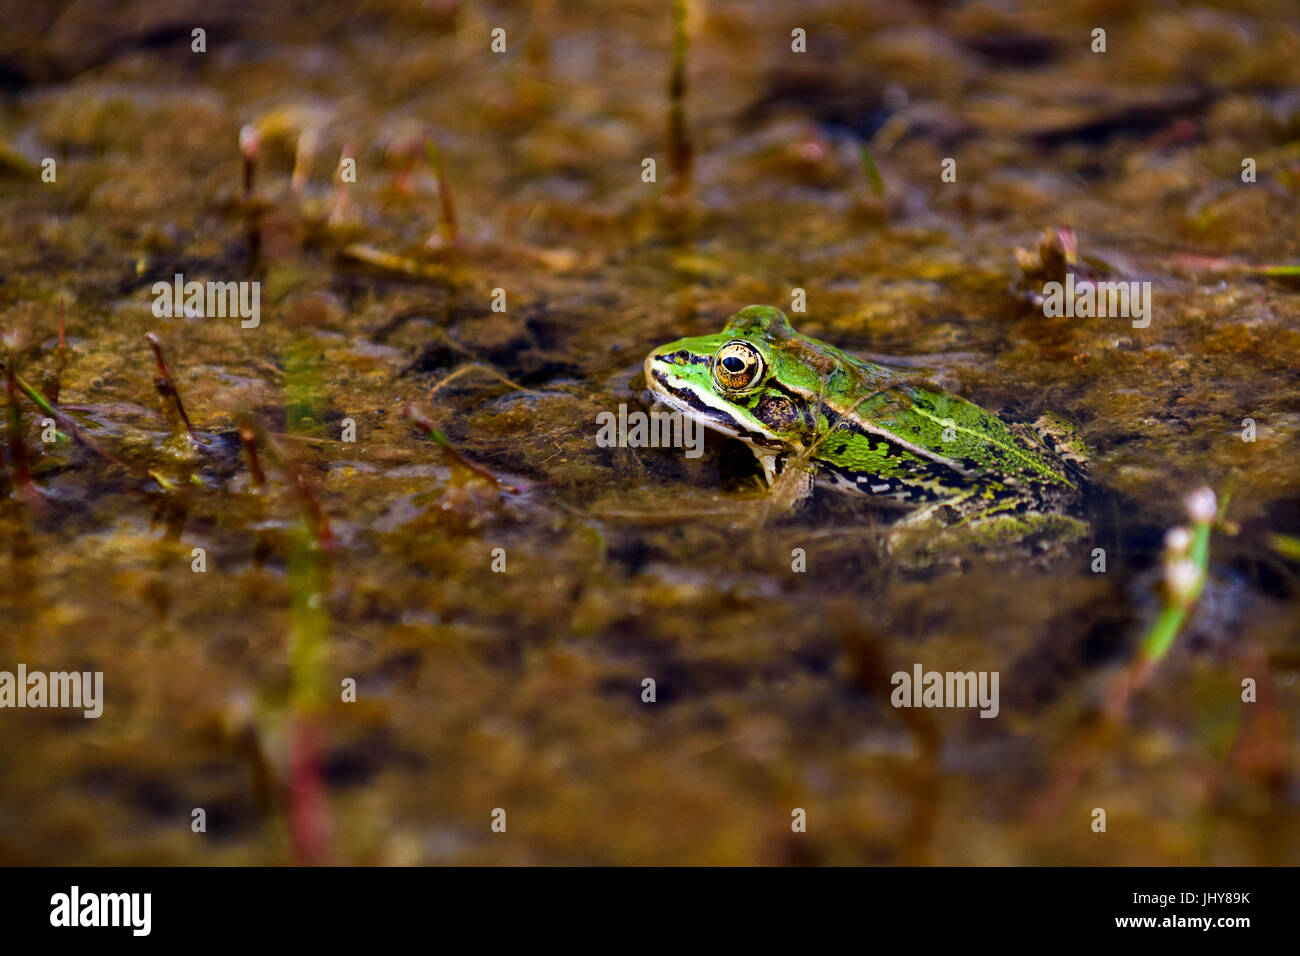 Common European water frog, green frog in its natural habitat, Rana esculenta - Stock Image